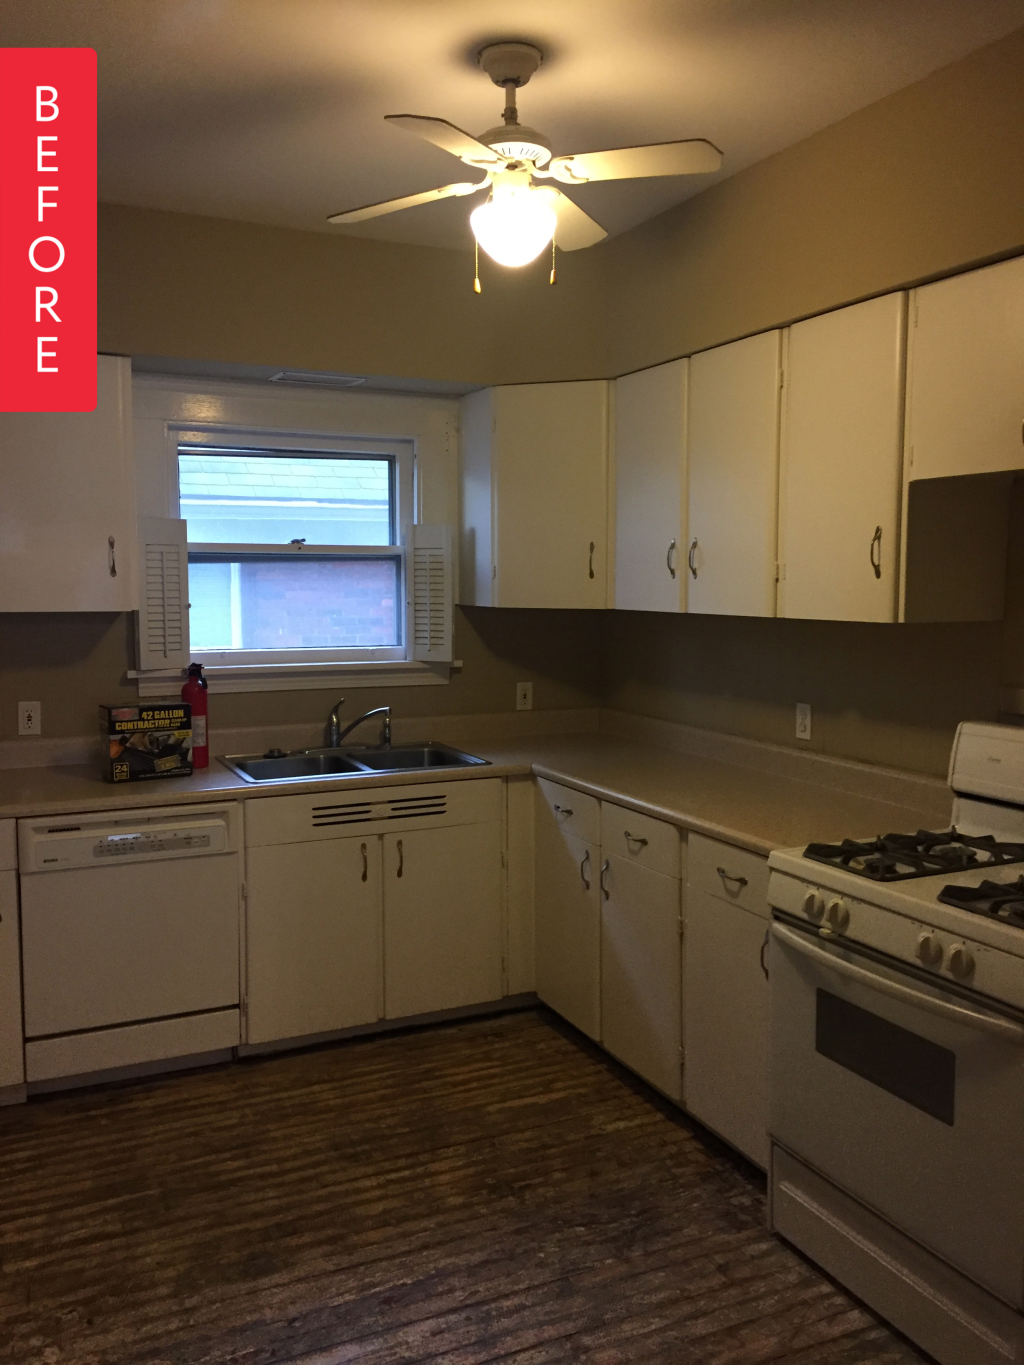 Before & After: A 1920s Kitchen Gets a Clean & Classic Upgrade